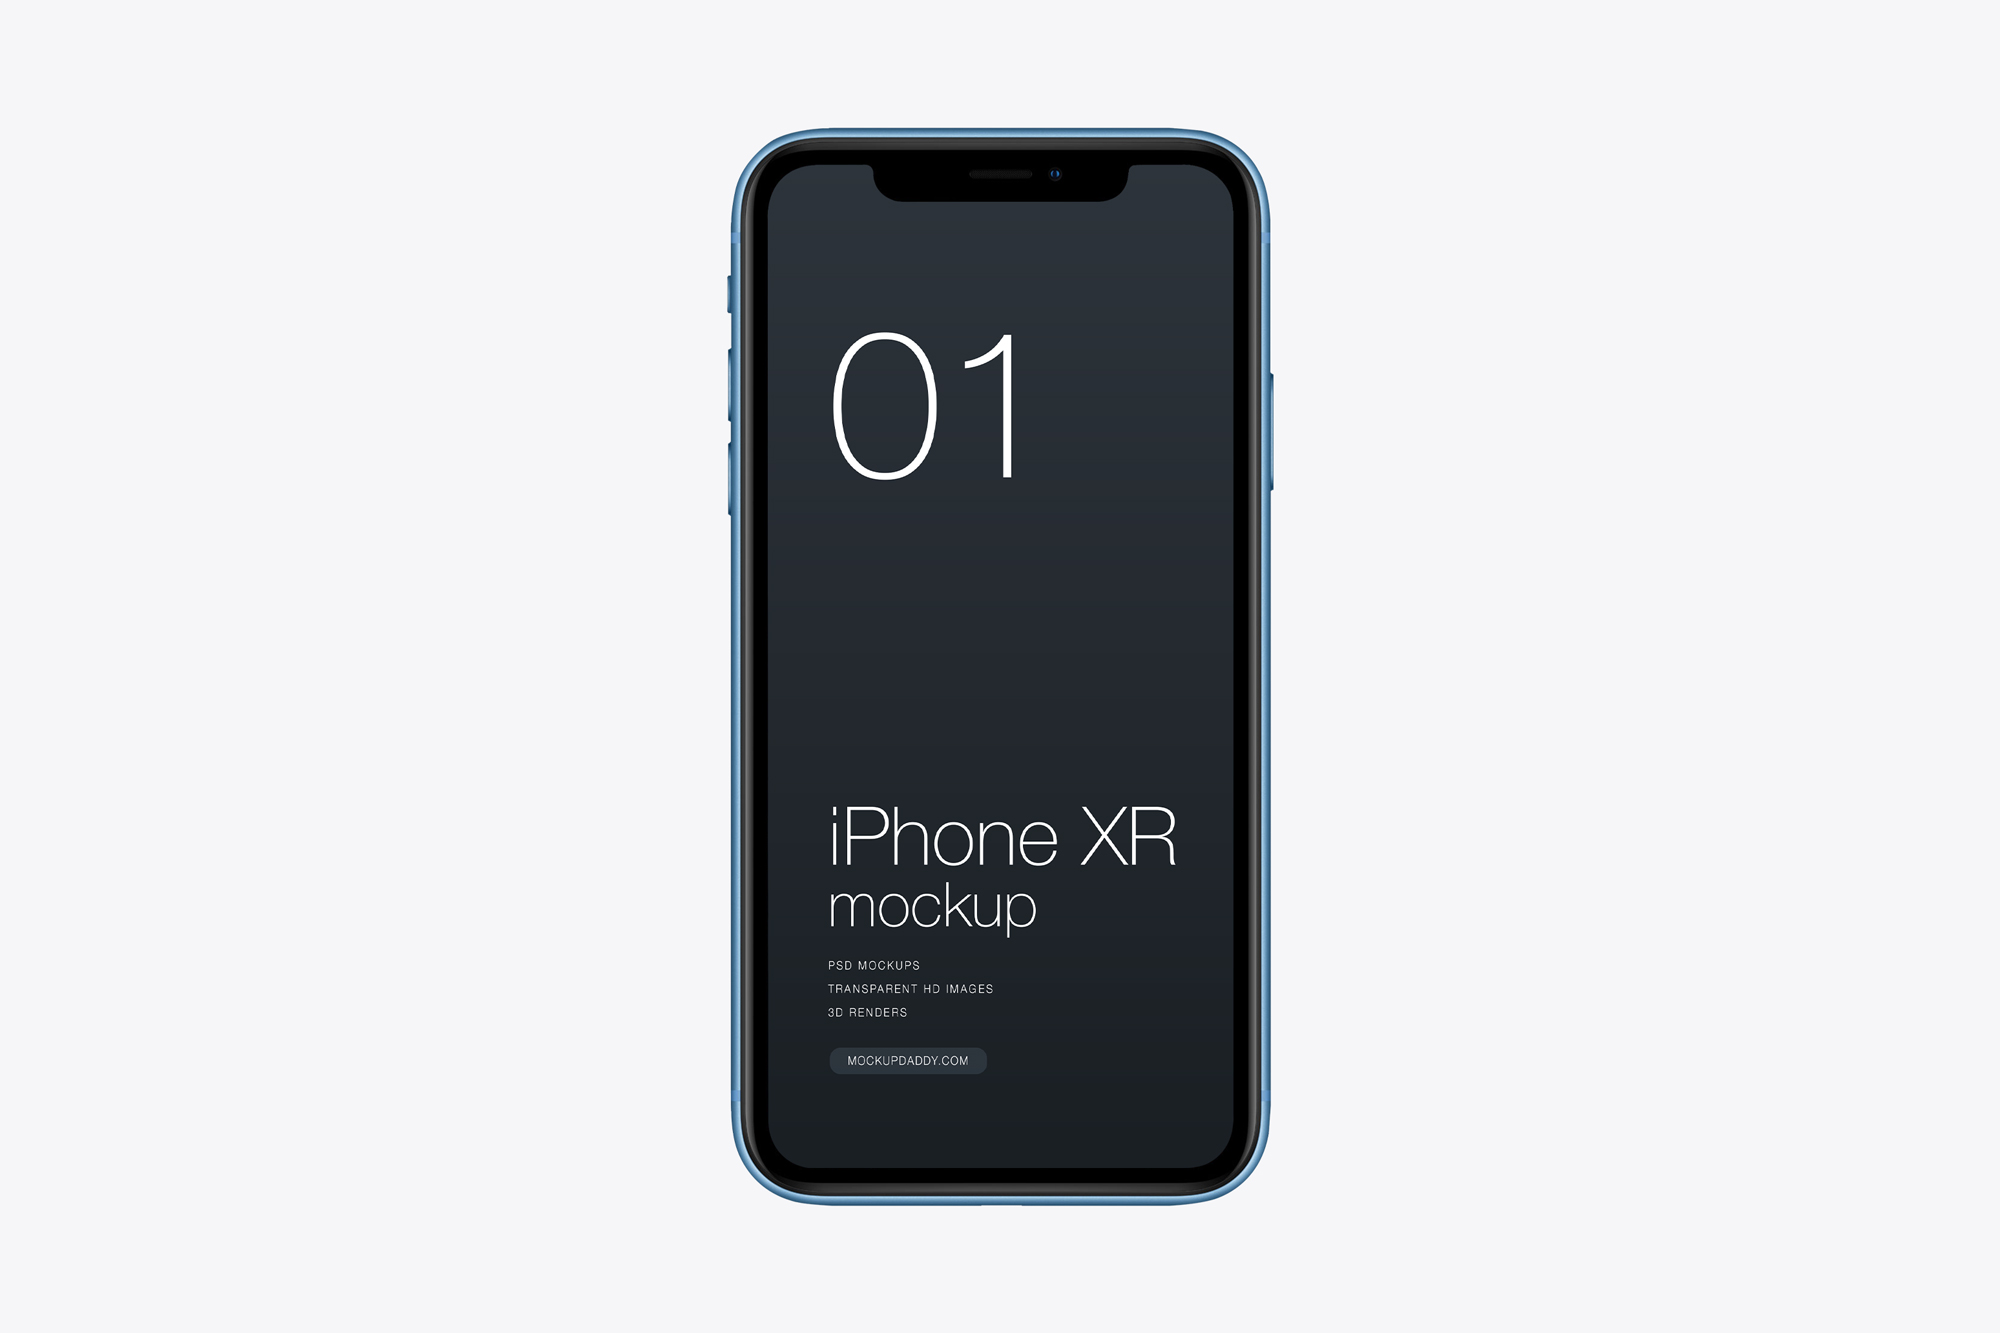 iphone xr front mockup 1